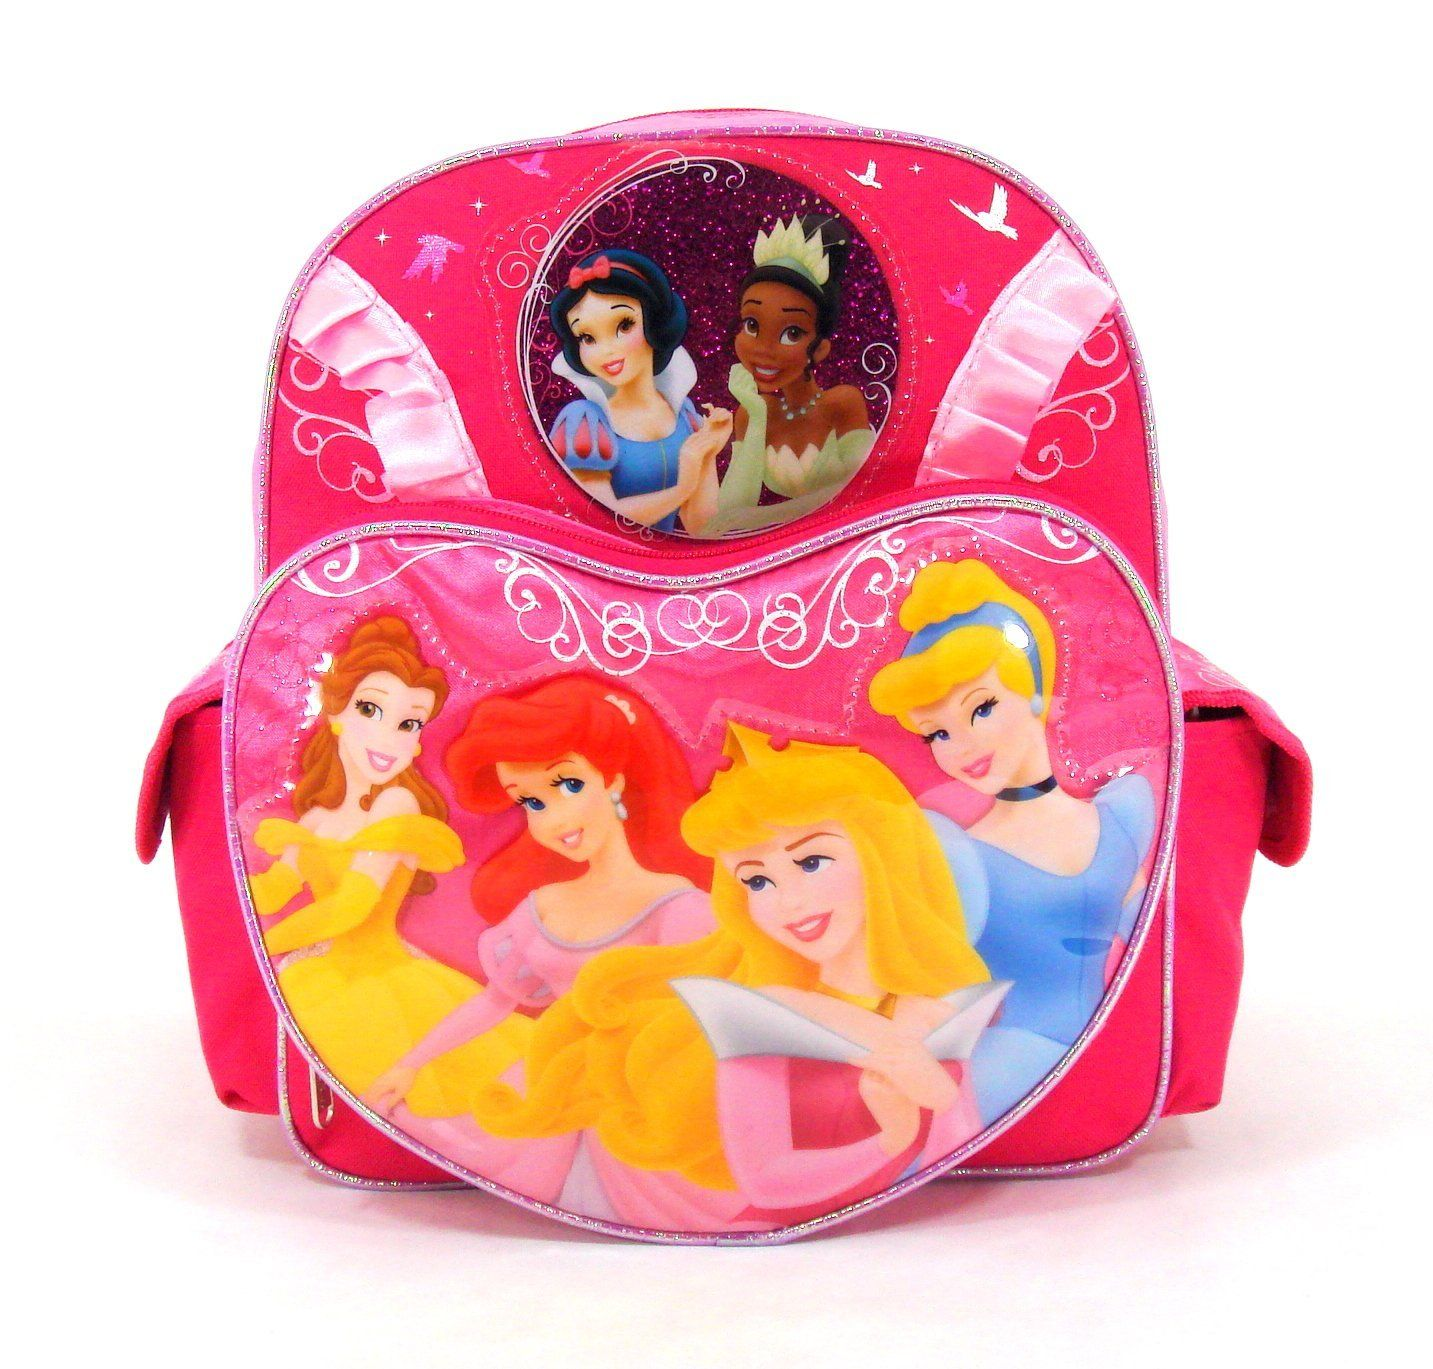 828be1741d Disney Princess - Princess Wishes - Large 12  Toddler Backpack - Featuring  Tiana